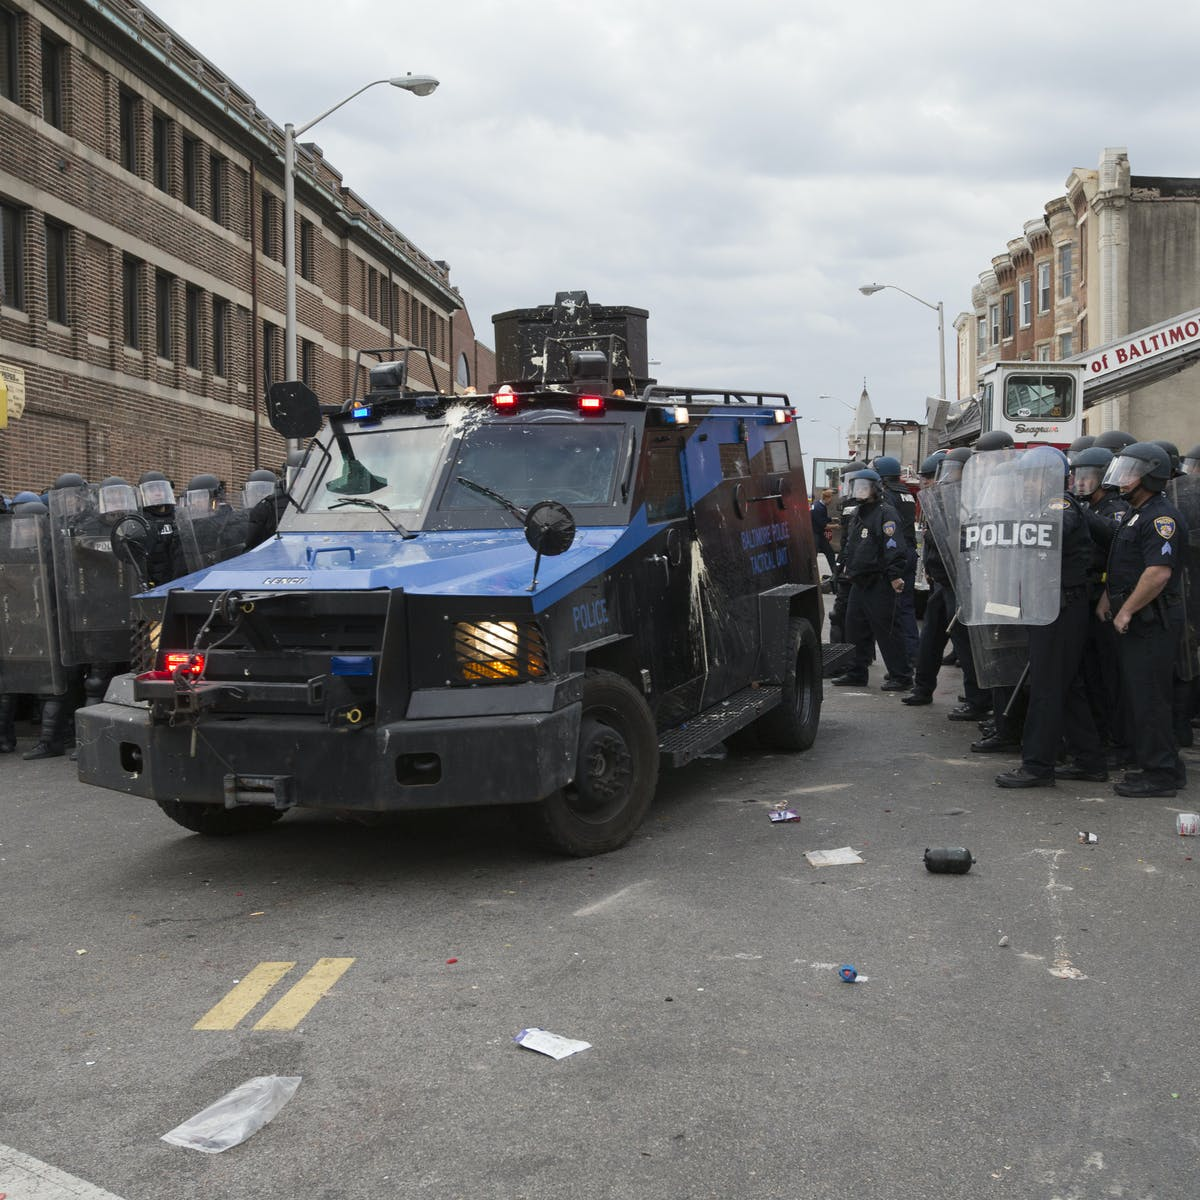 What led to the Baltimore riots?